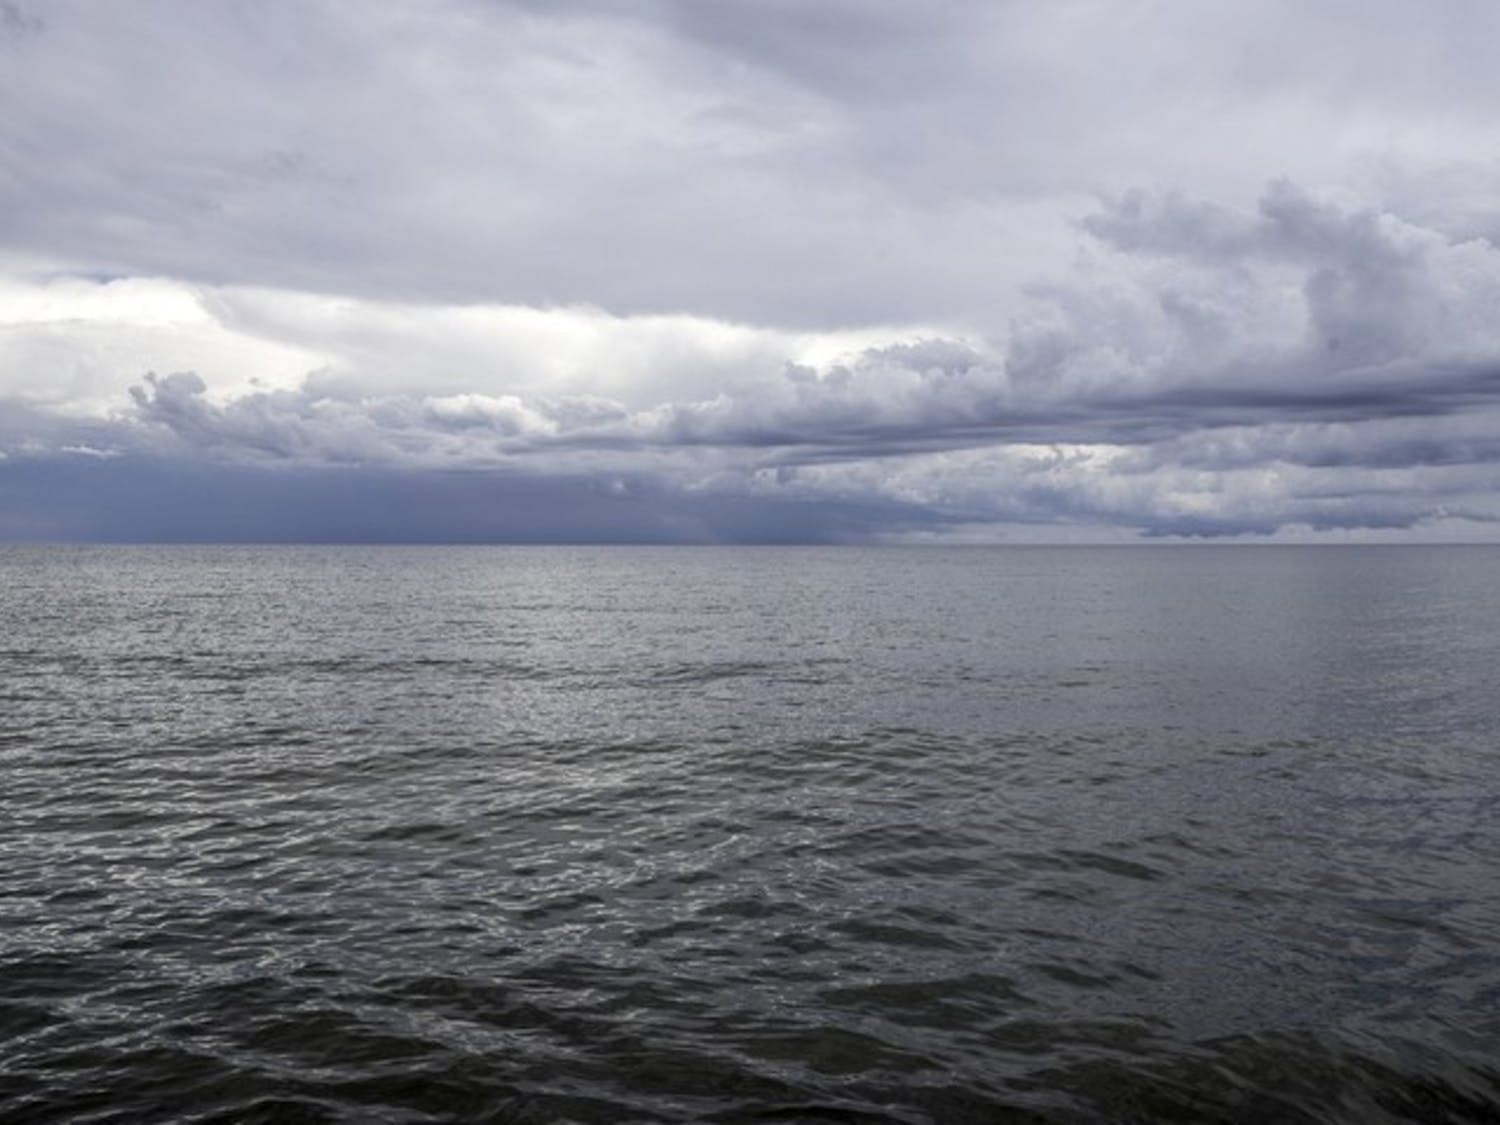 UW System researchers will work to maximize the sustainable use of the Great Lakes for the growth of the Wisconsin economy and enhance the health of connecting ecosystems.